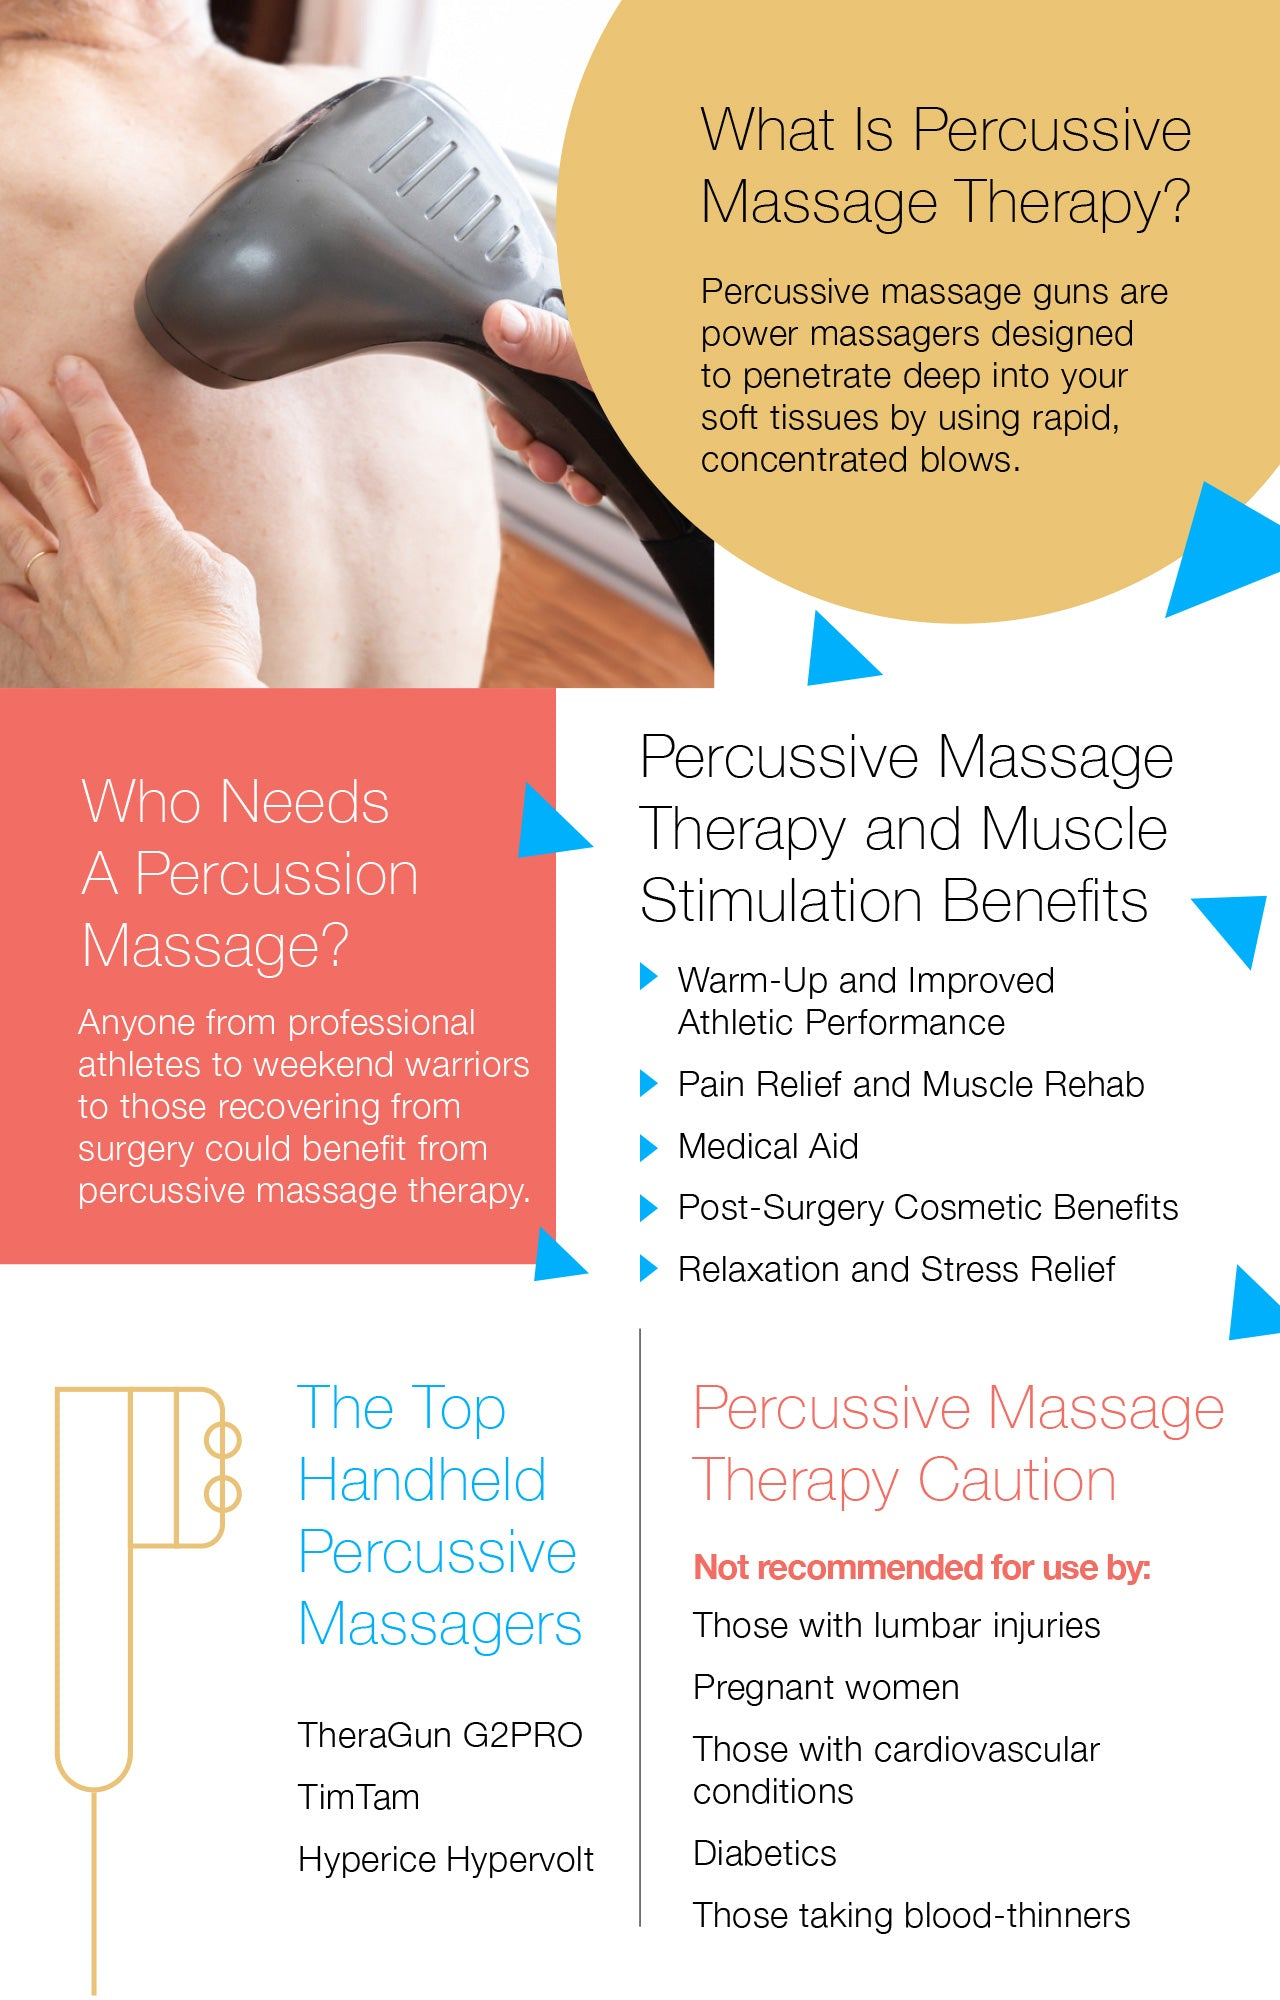 What Is Percussive Massage Therapy?